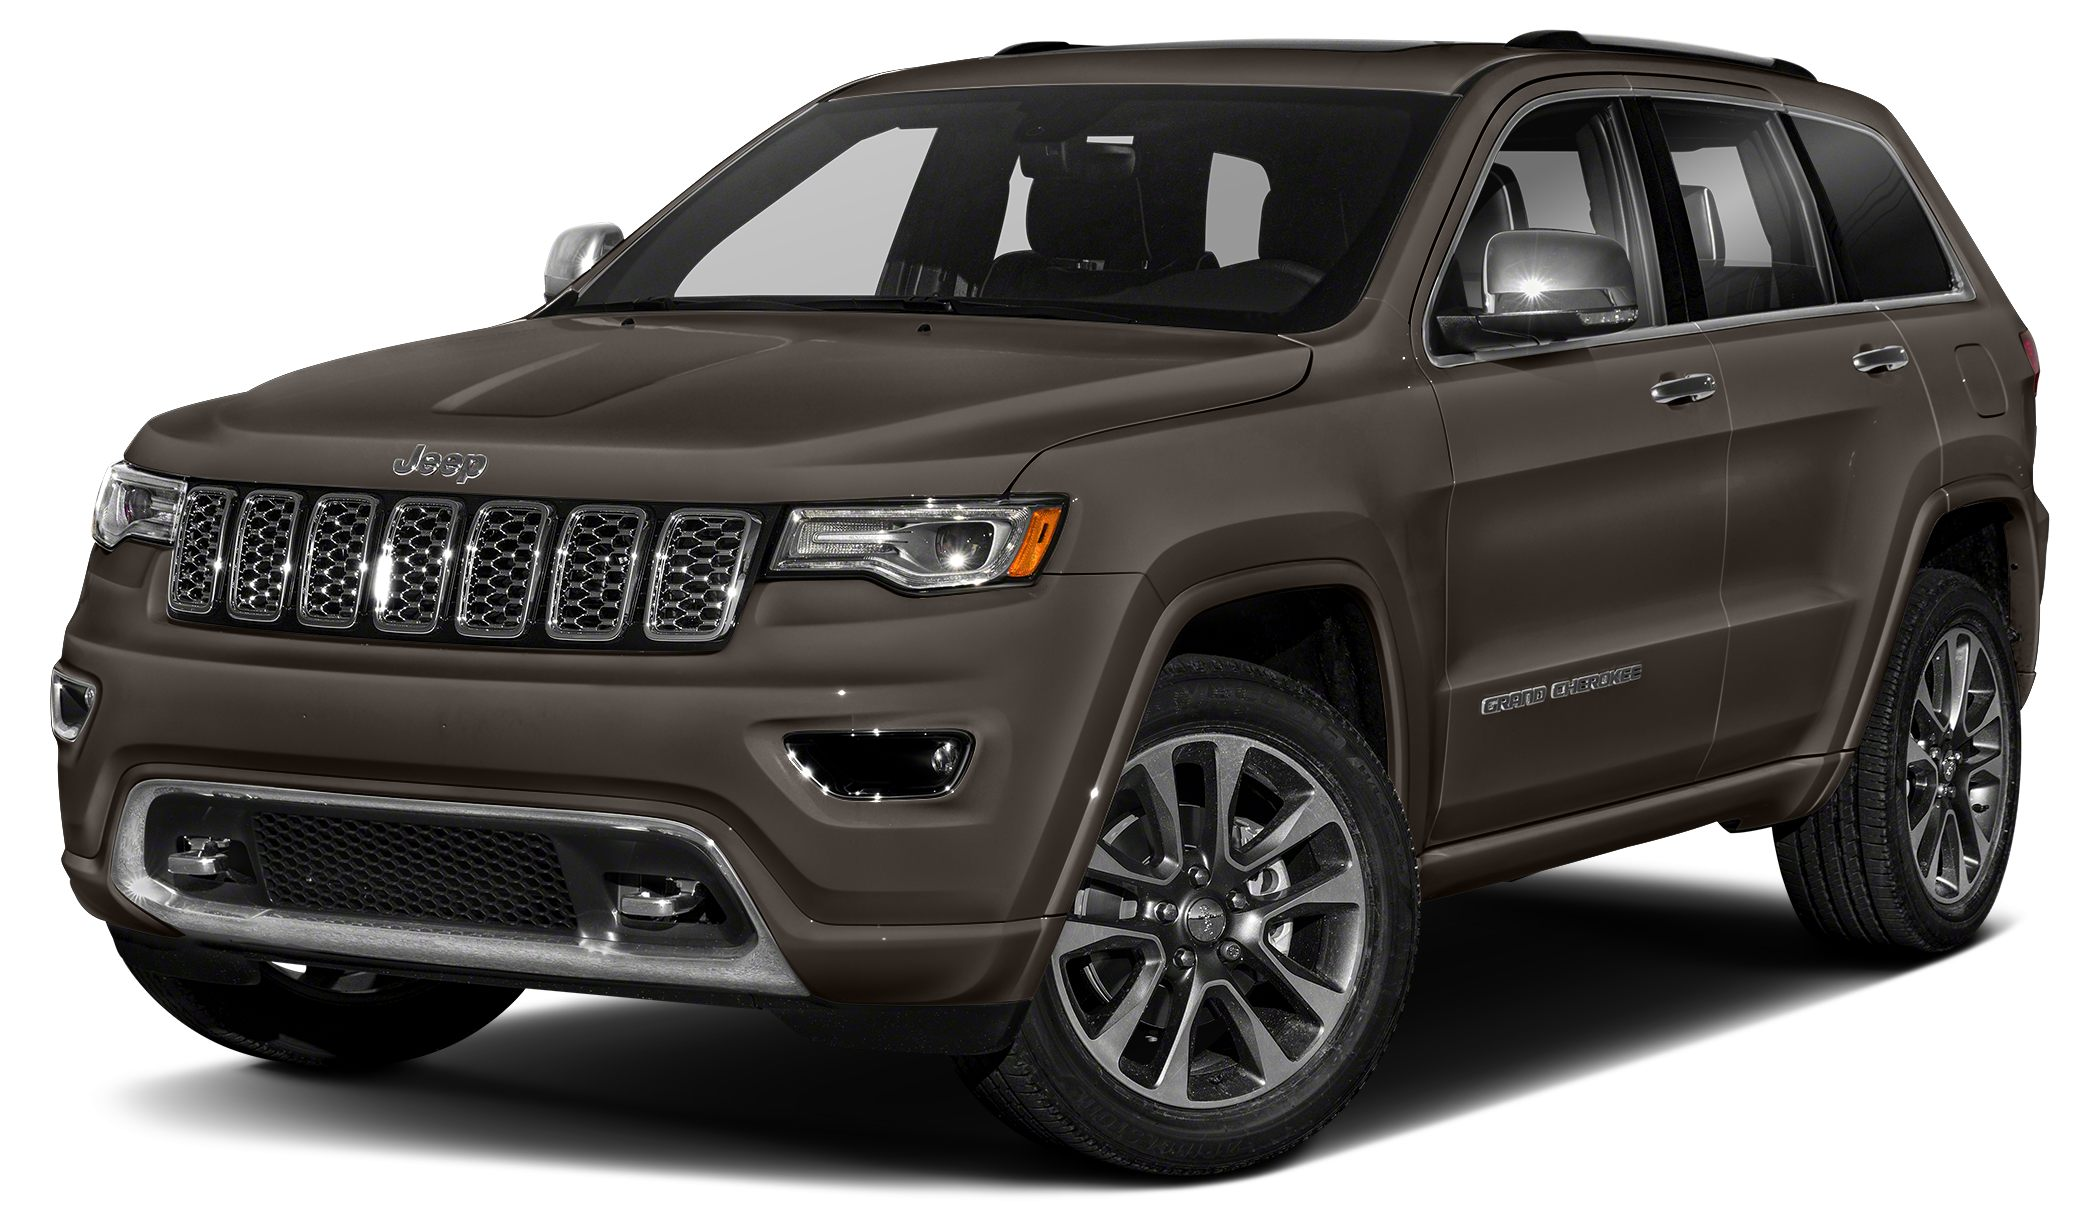 2018 Jeep Grand Cherokee Overland Real gas sipper 26 MPG Hwy New In Stock A amazing vehicle